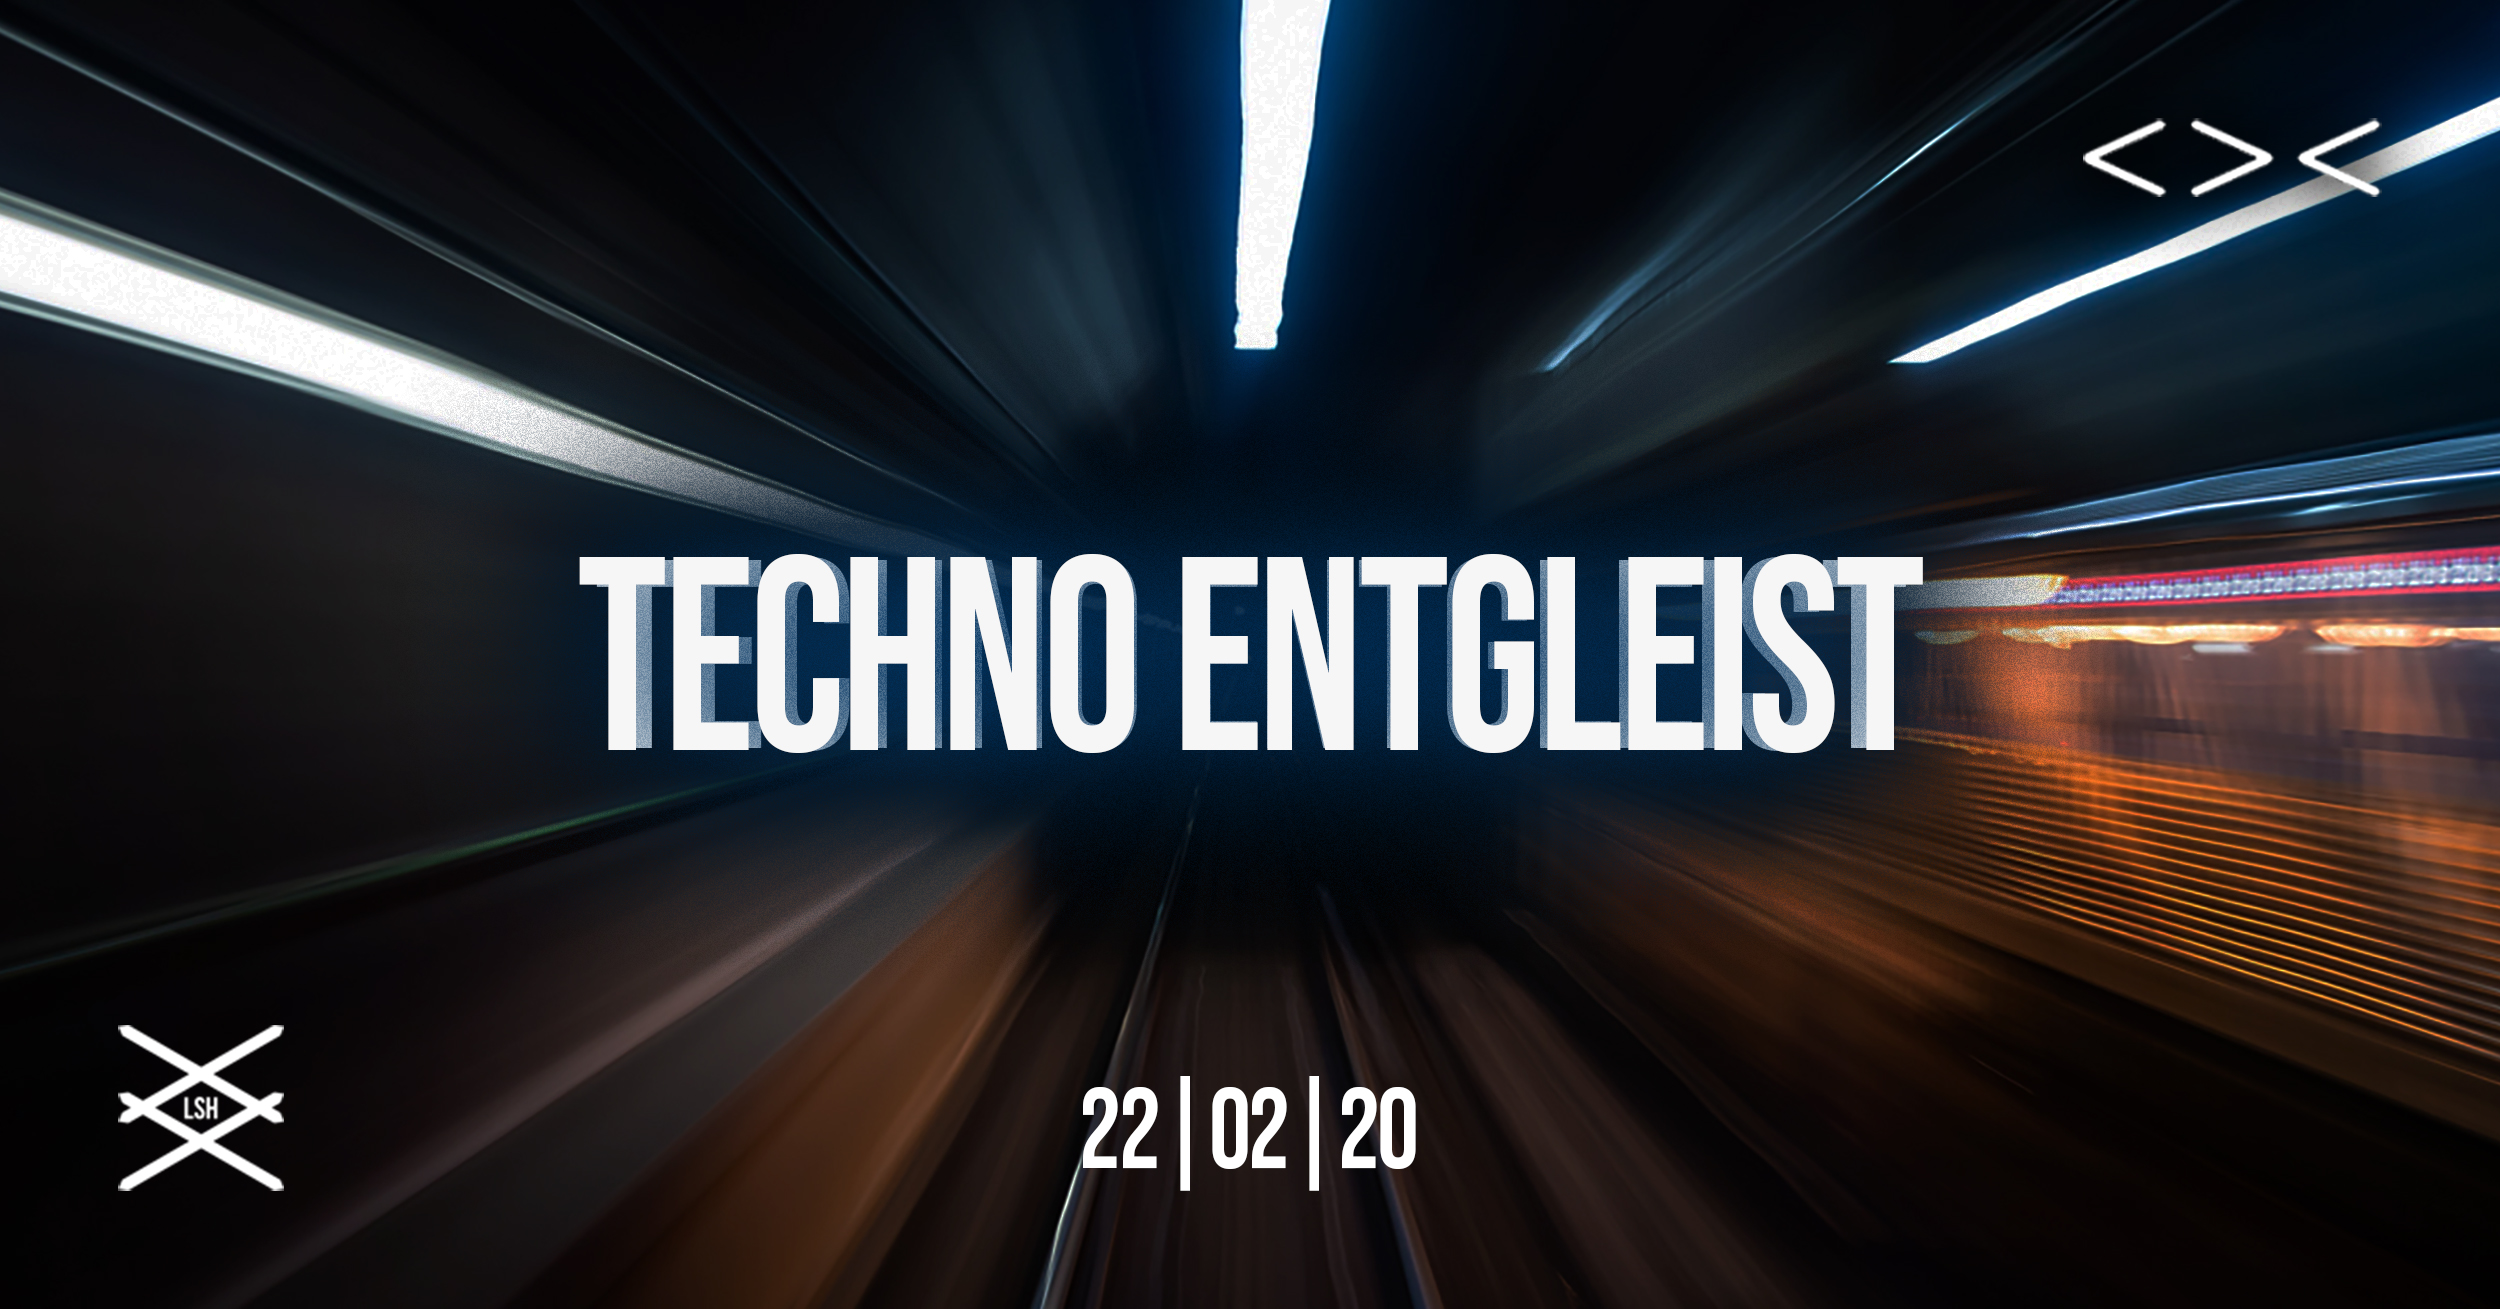 Techno Entgleist x Free Party | Grelle Forelle am 22. February 2020 @ Grelle Forelle.